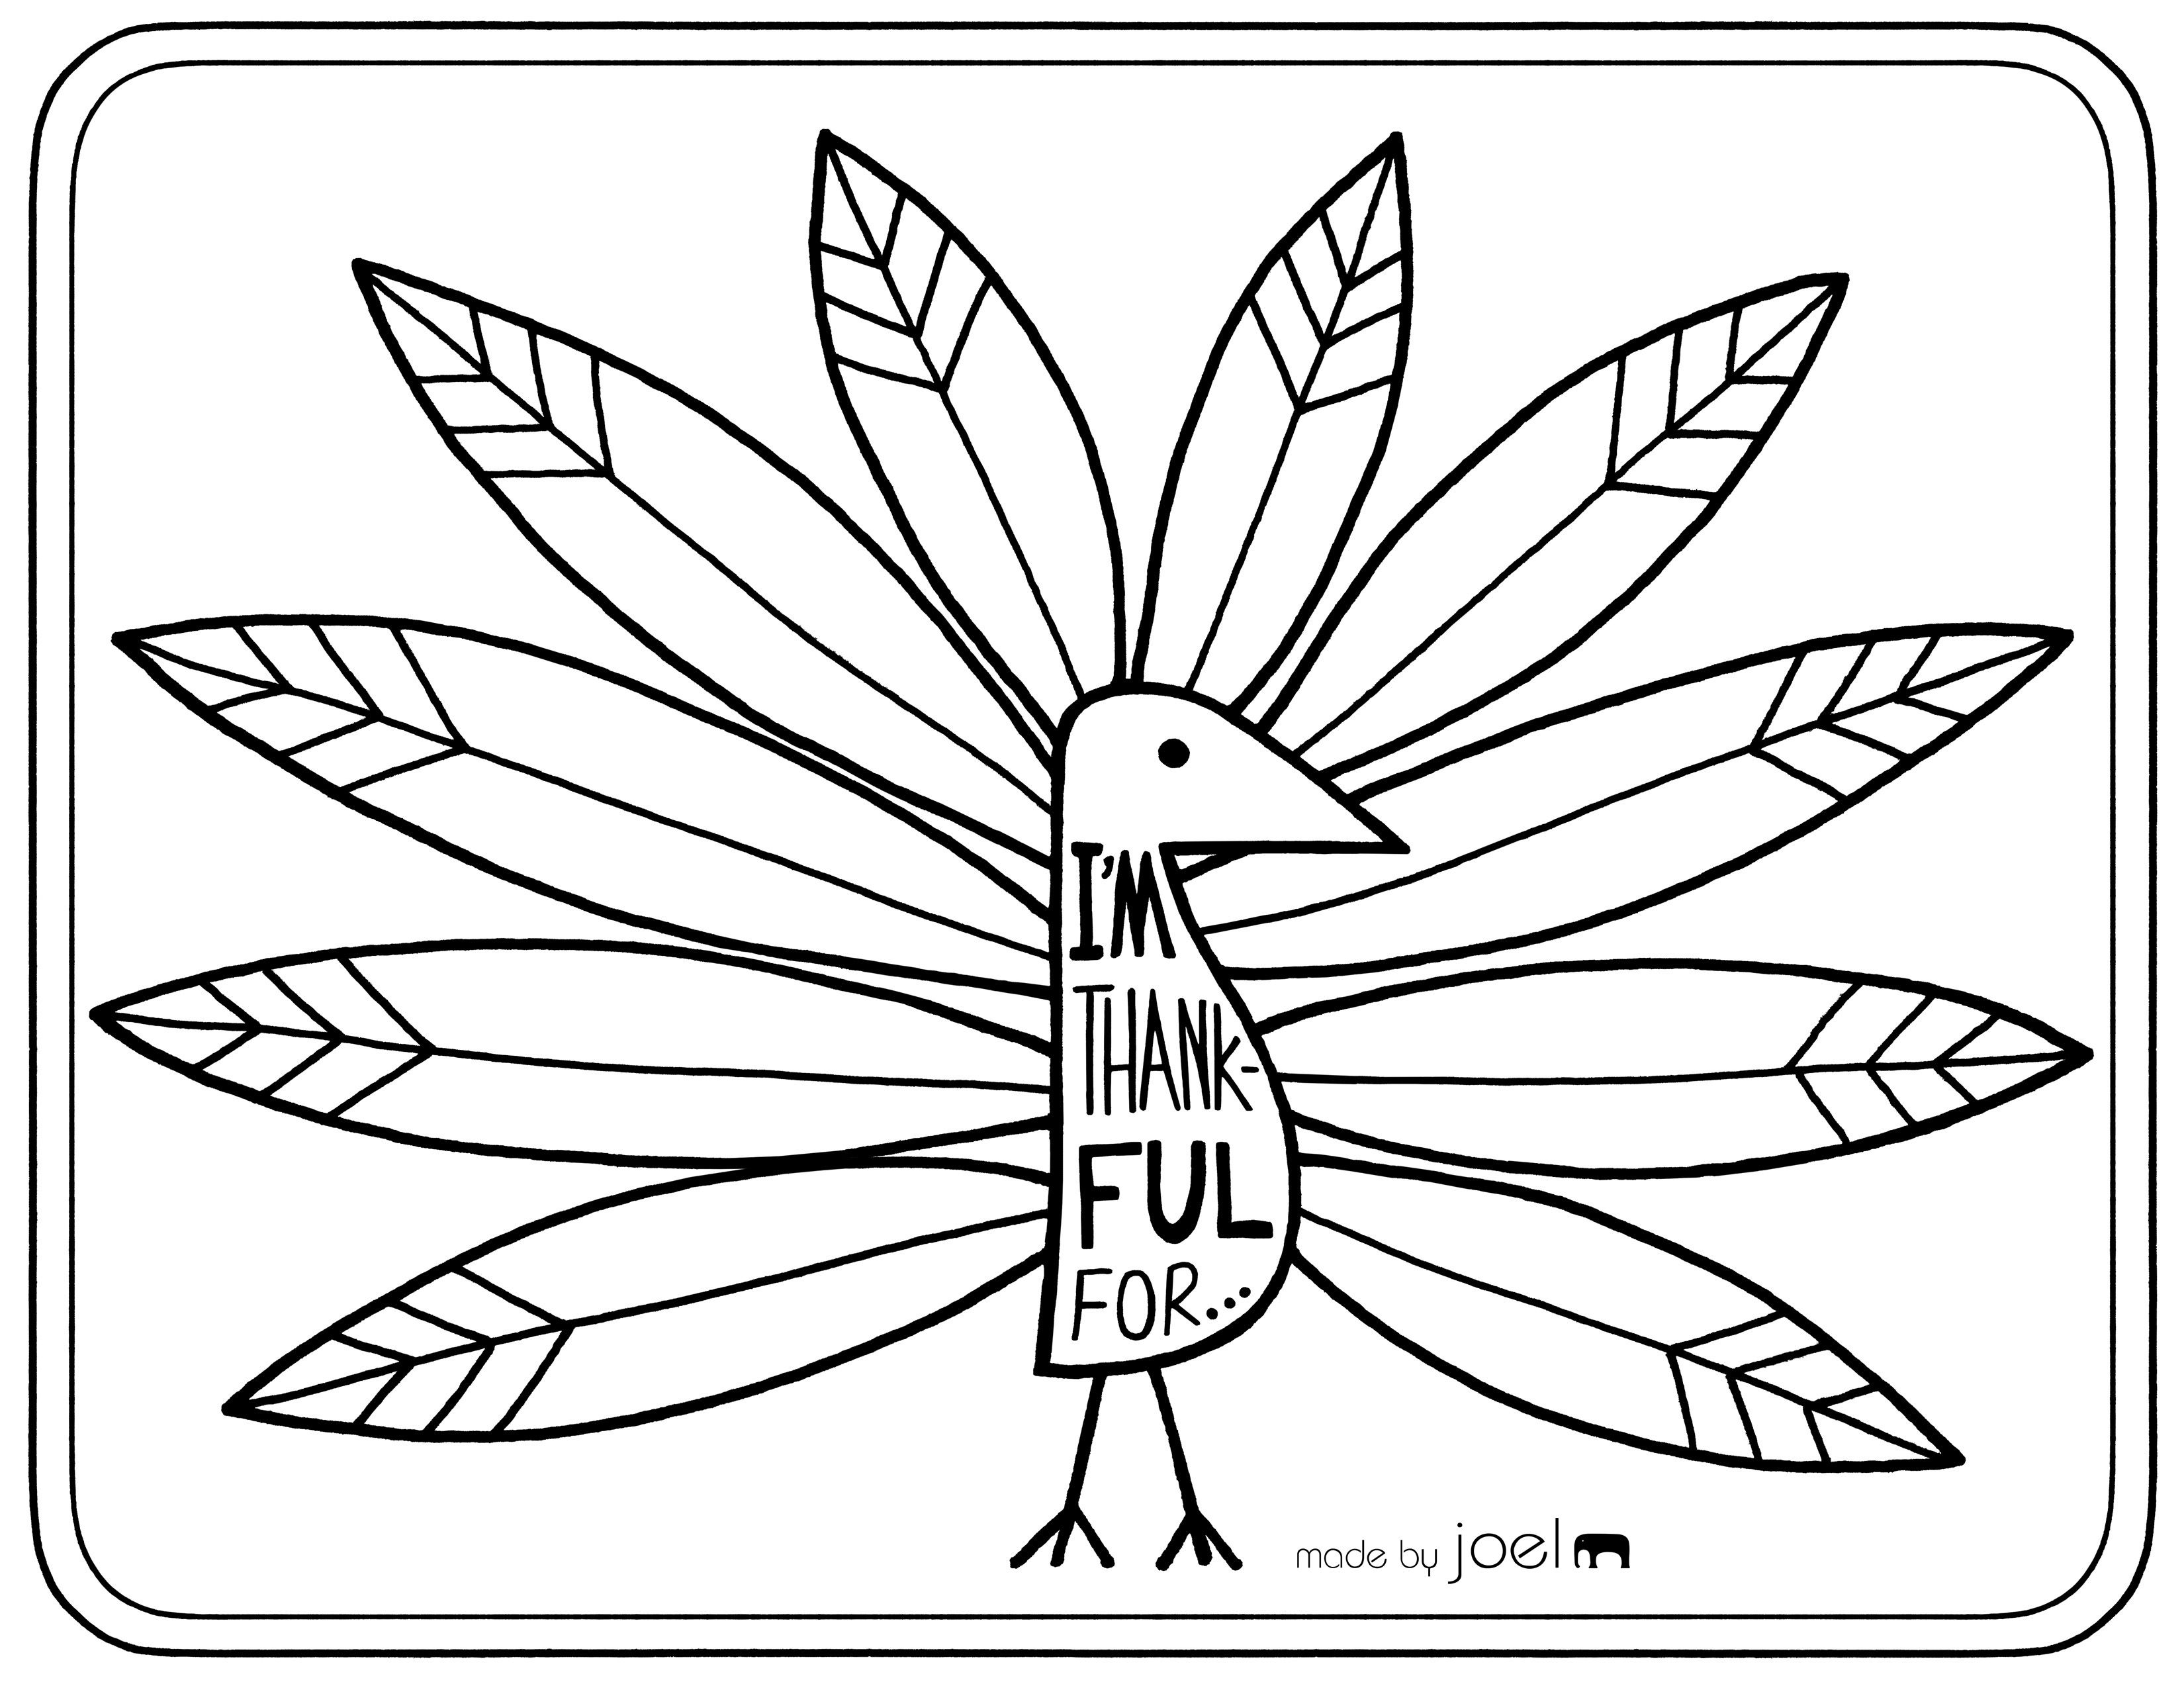 Free Printable Placemat For Giving Thanks | Fall Crafts & Ideas - Free Printable Thanksgiving Turkey Template